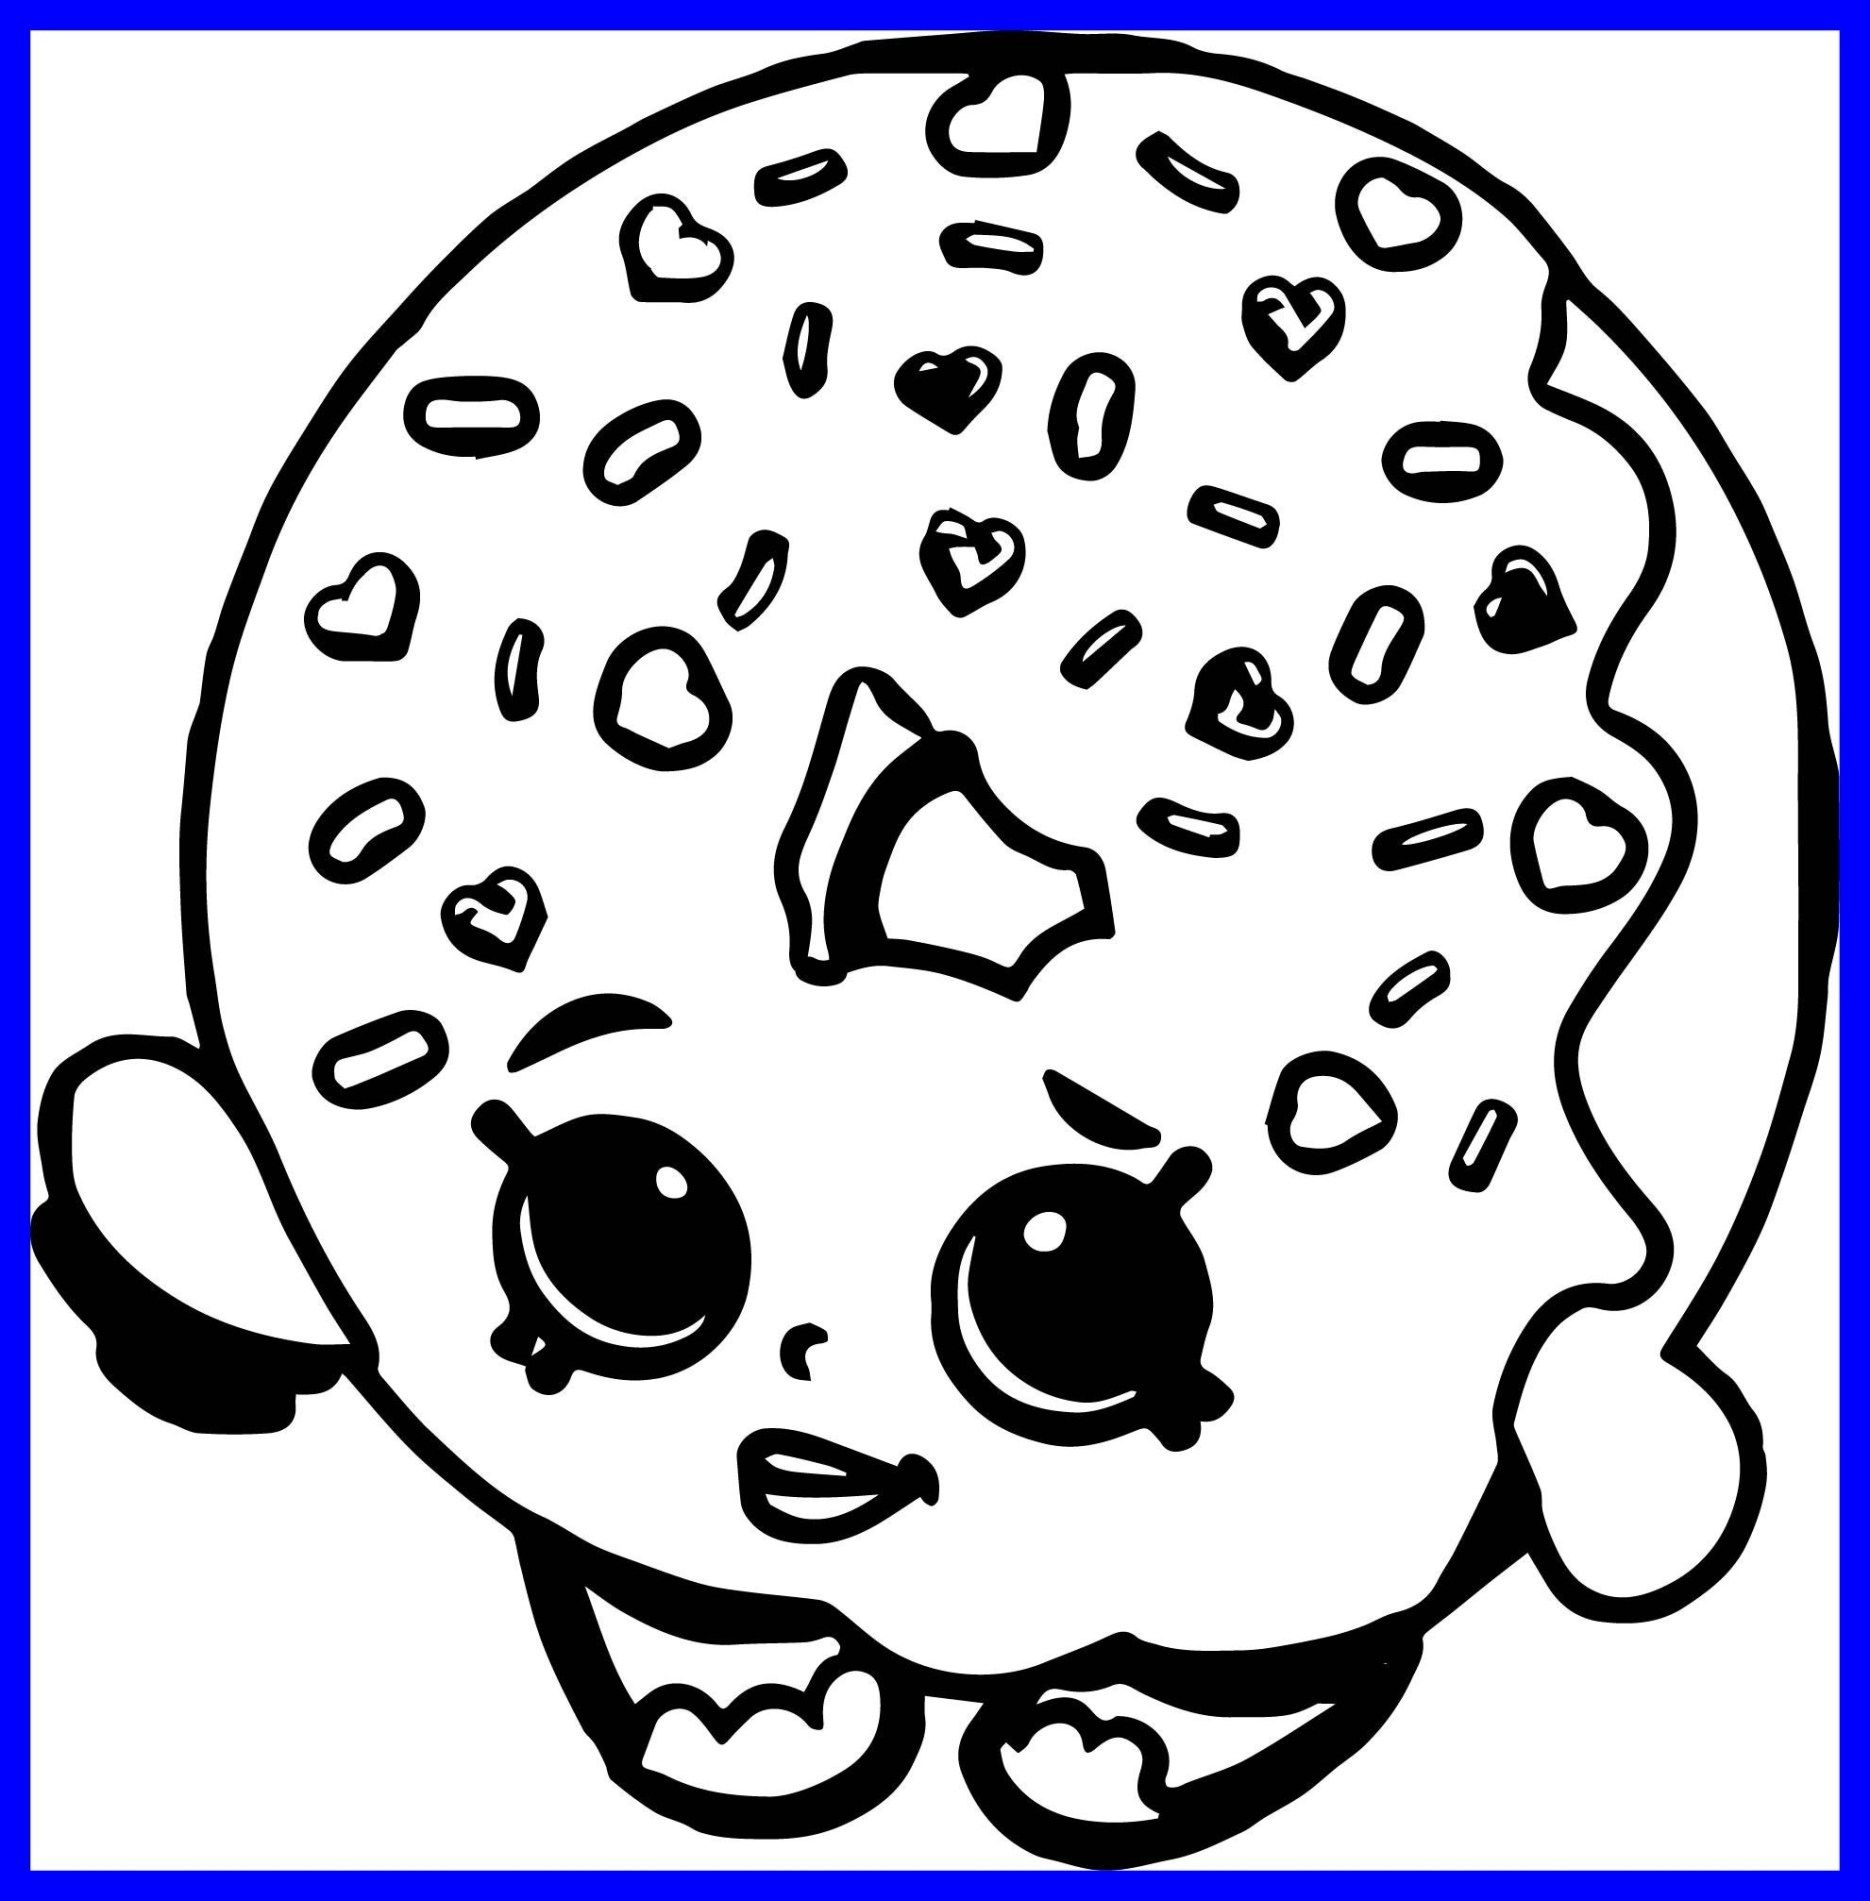 21 Inspired Photo Of Donut Coloring Page Shopkin Coloring Pages